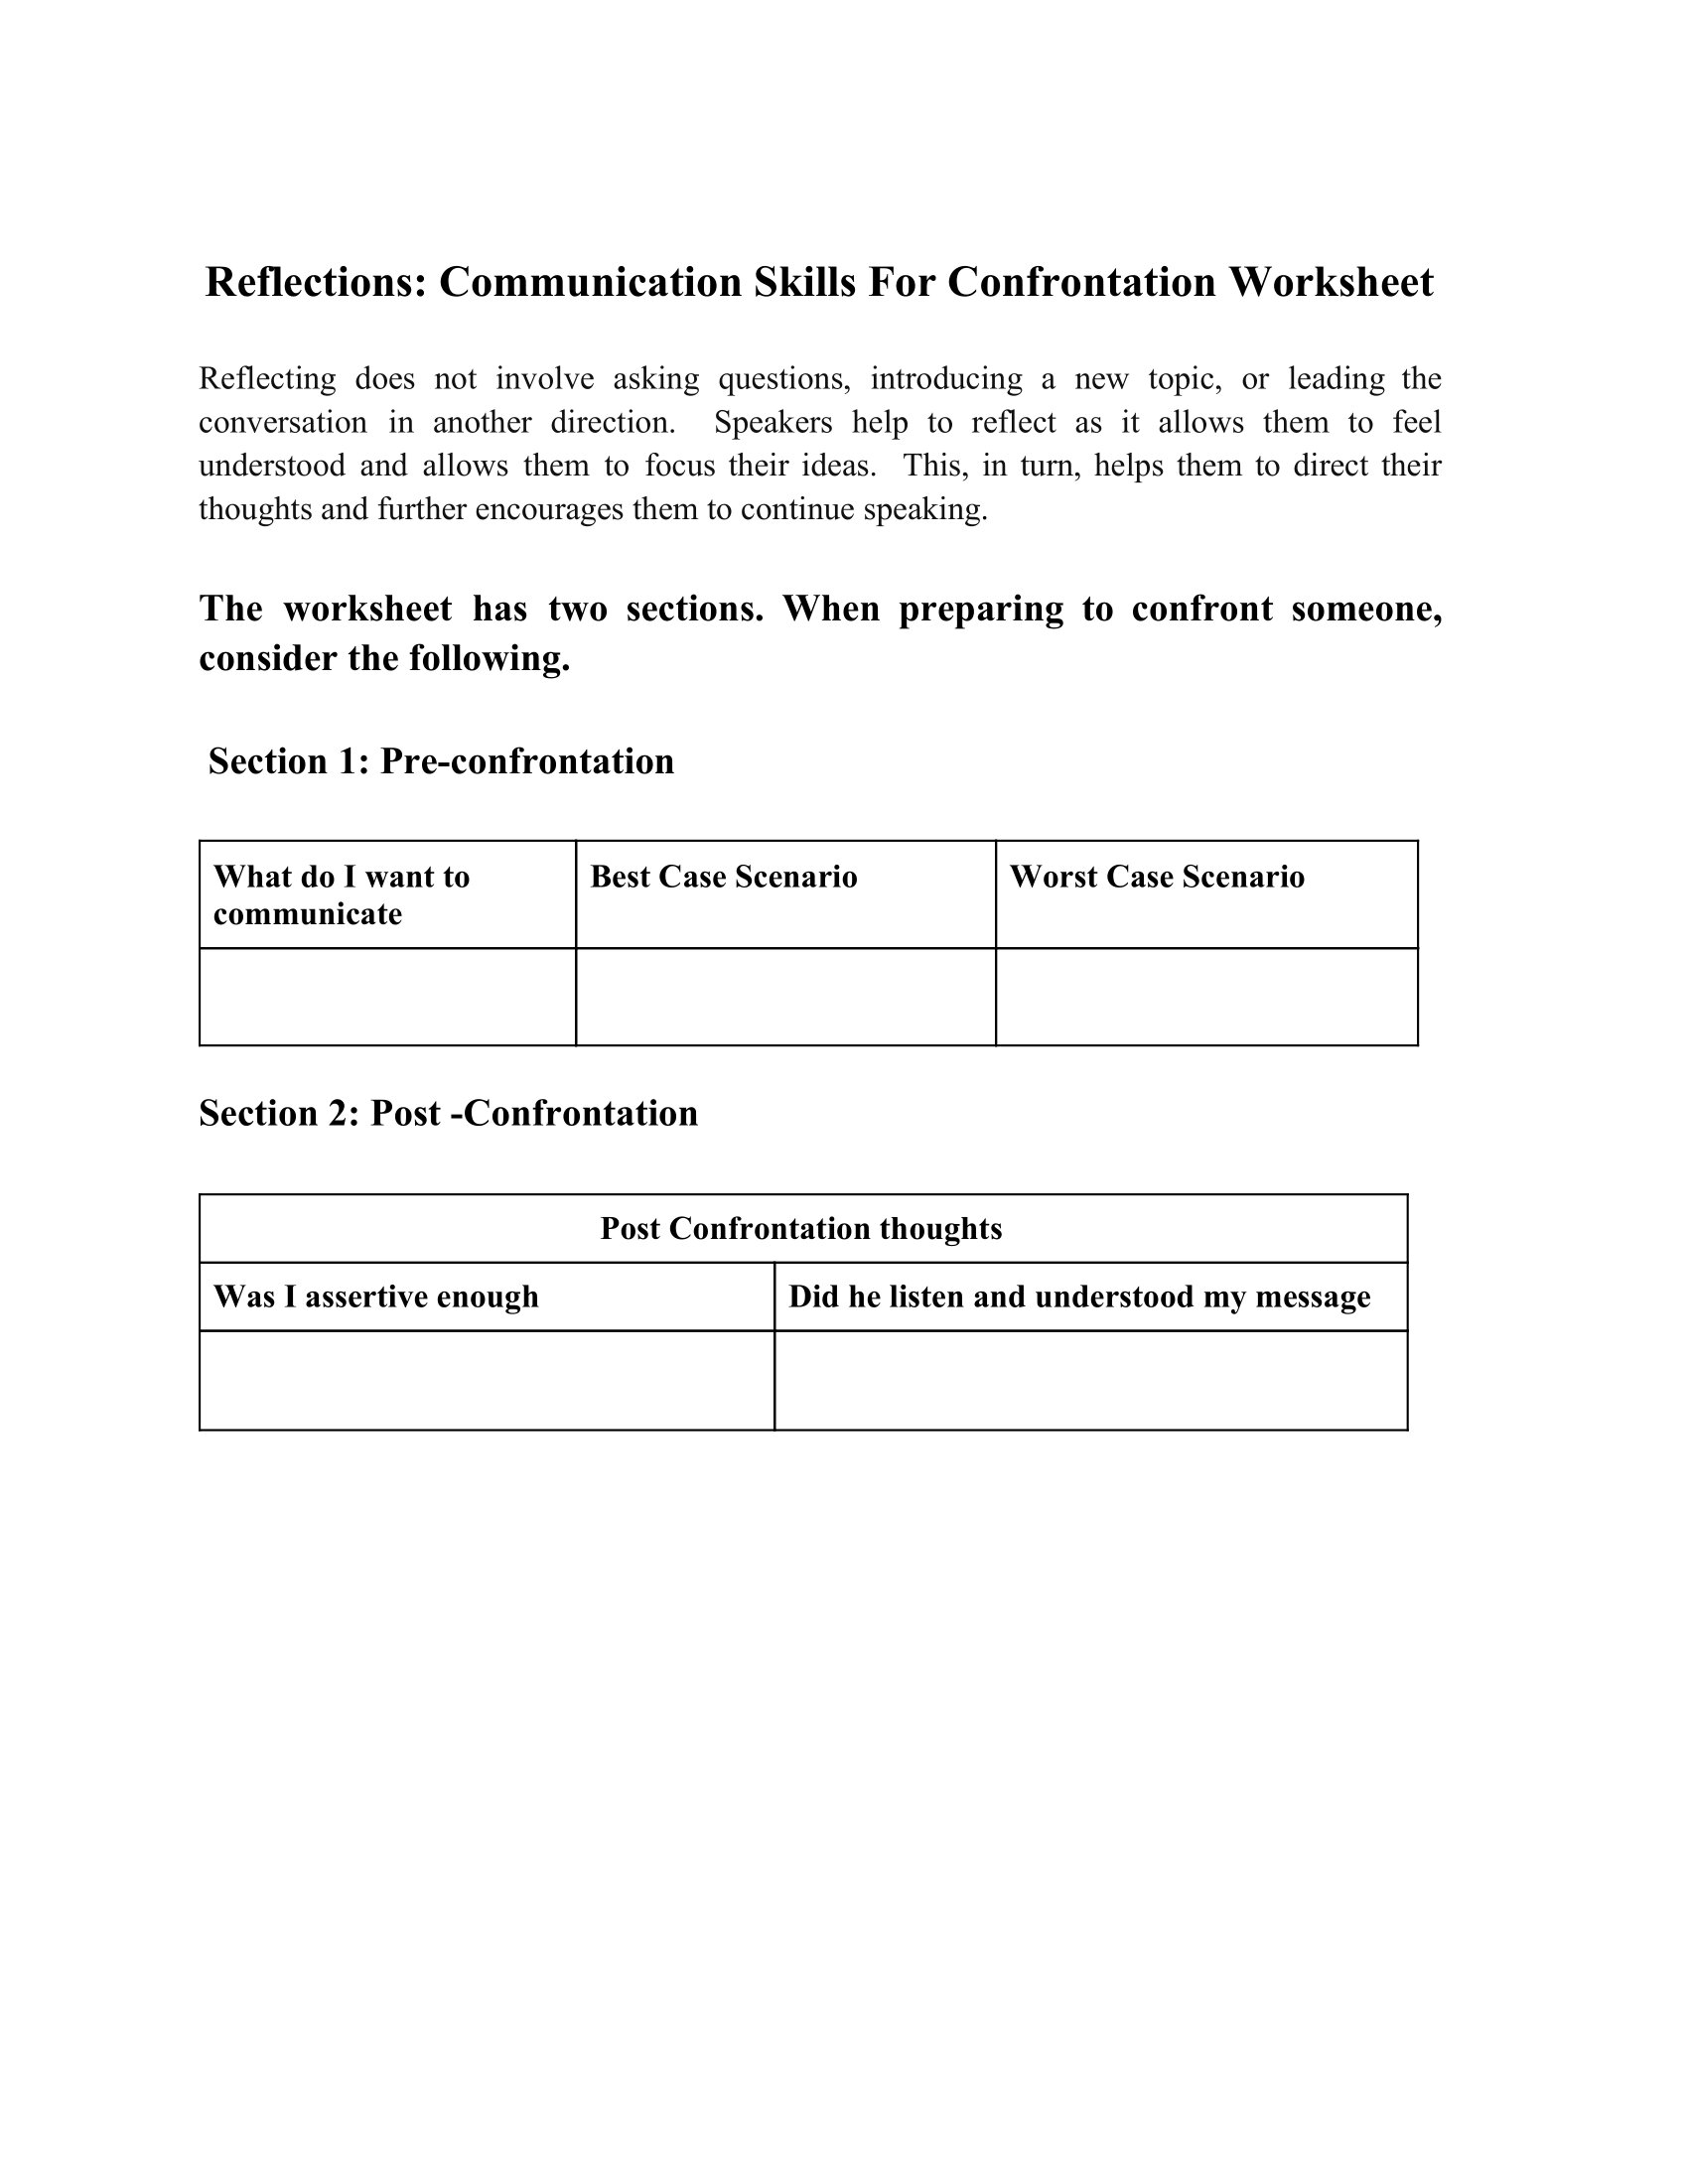 Reflections Communication Skills For Confrontation